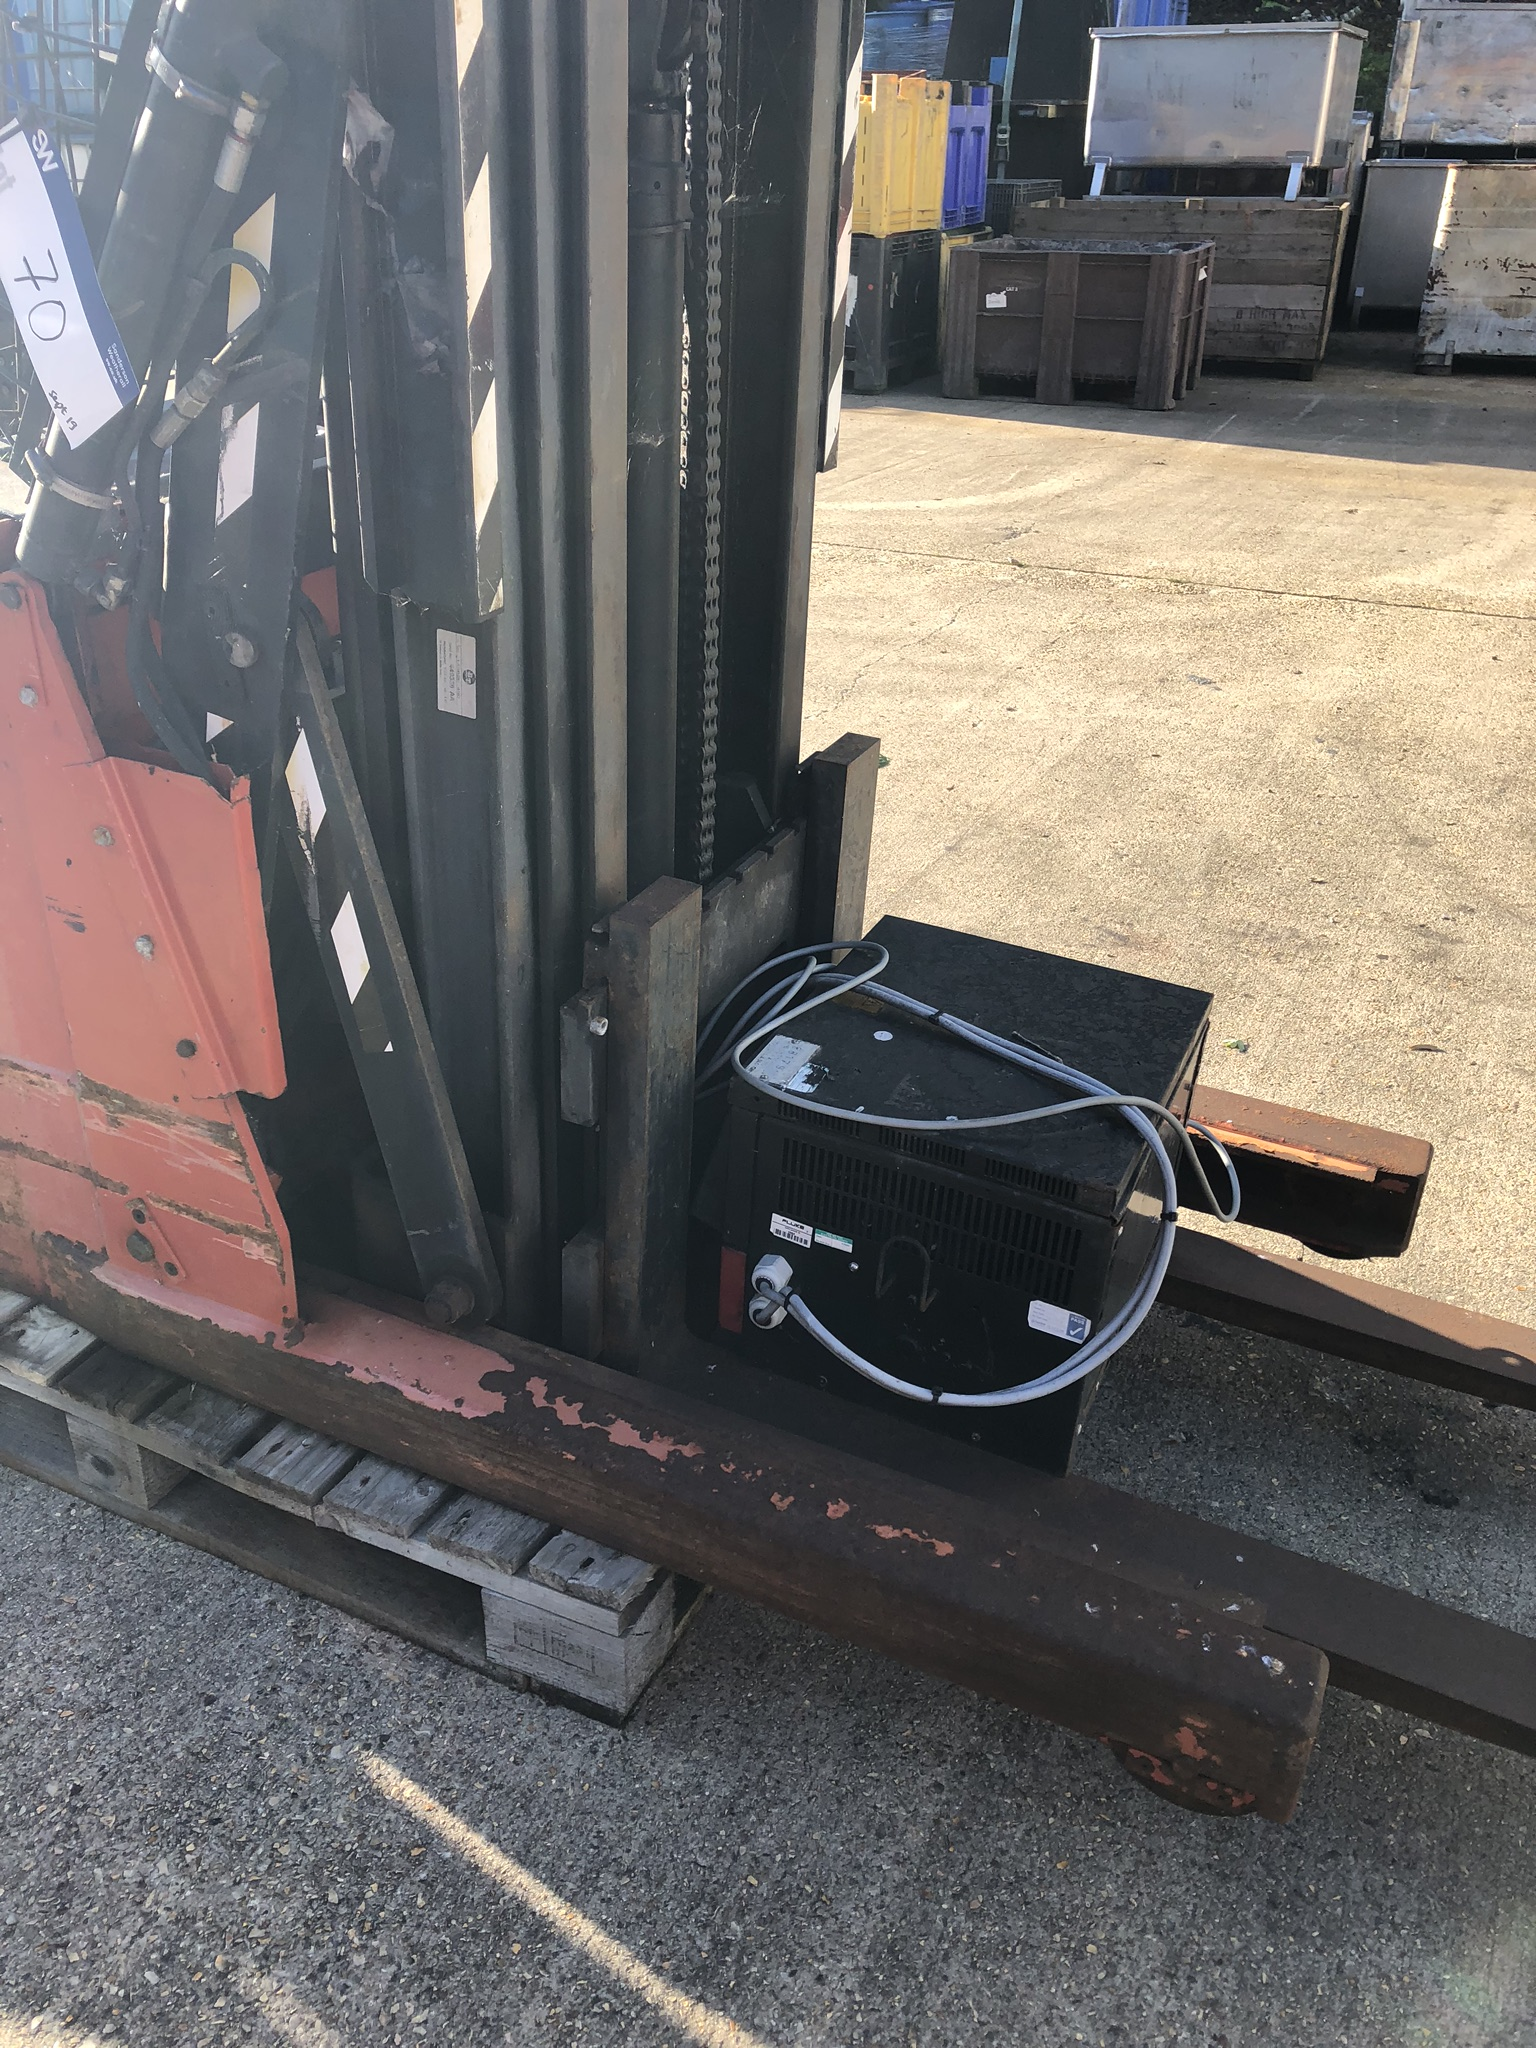 Lot 70 - BT LSR 1200/2 1200kg Reach Truck, serial no. 440961AA, year of manufacture 2002, lift out